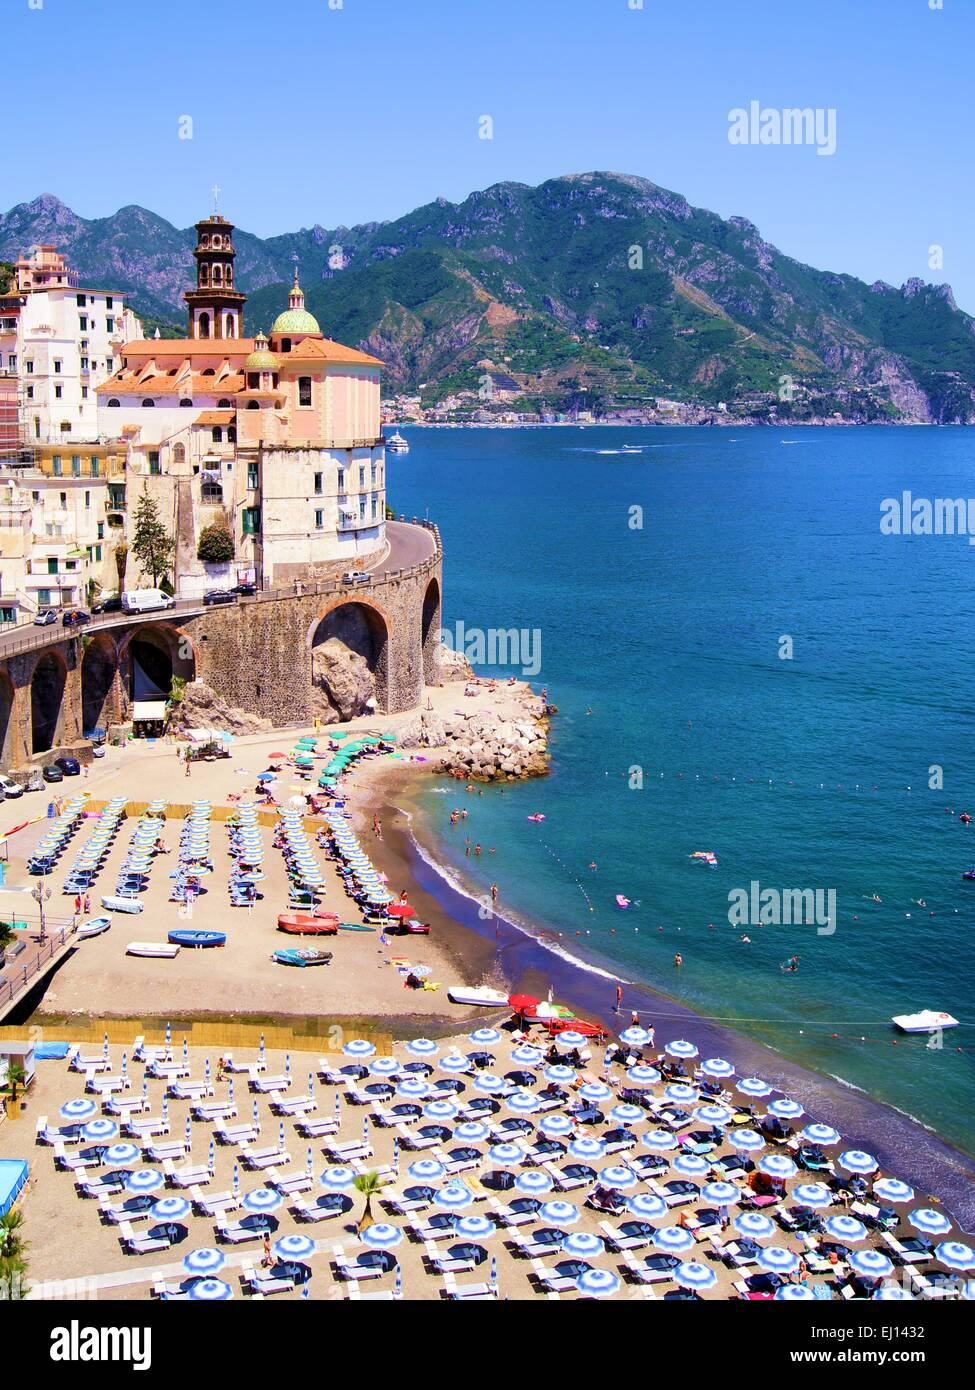 Colorful View Over The Beaches Of The Amalfi Coast Italy